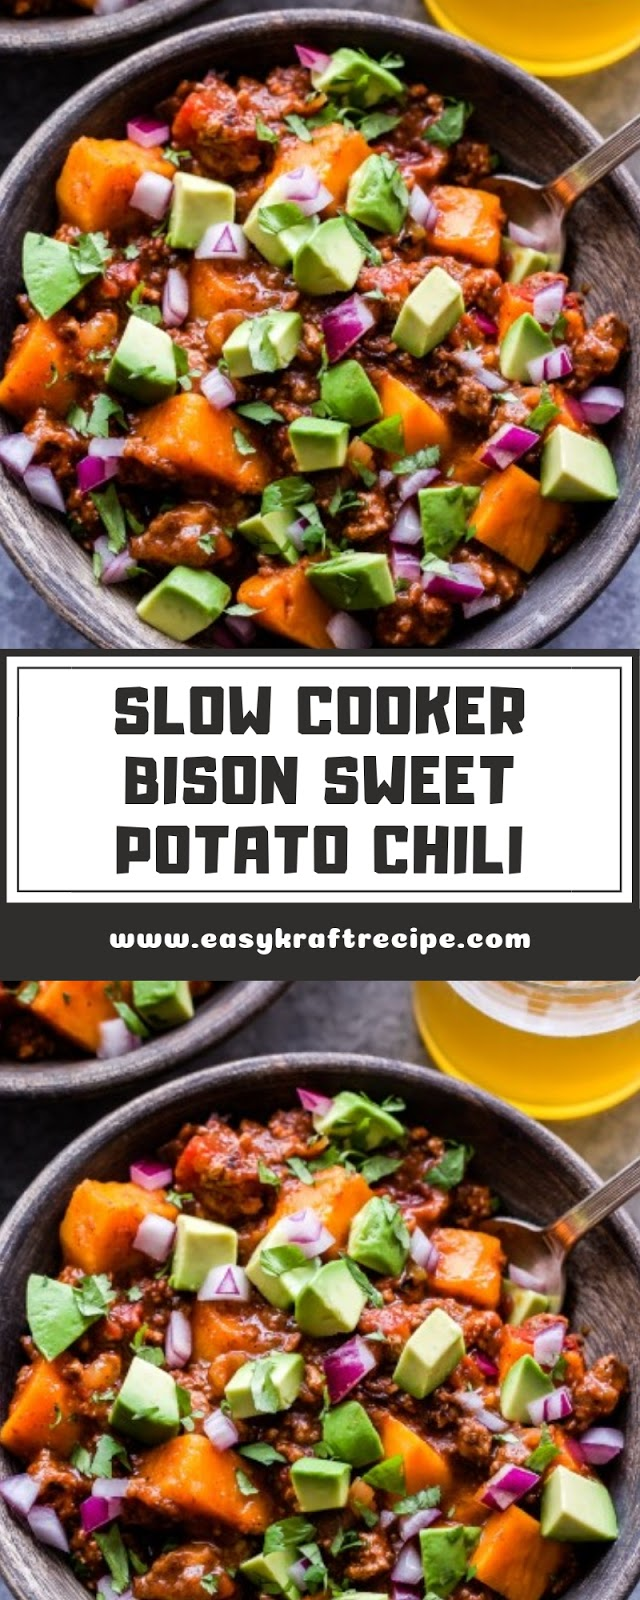 SLOW COOKER BISON SWEET POTATO CHILI